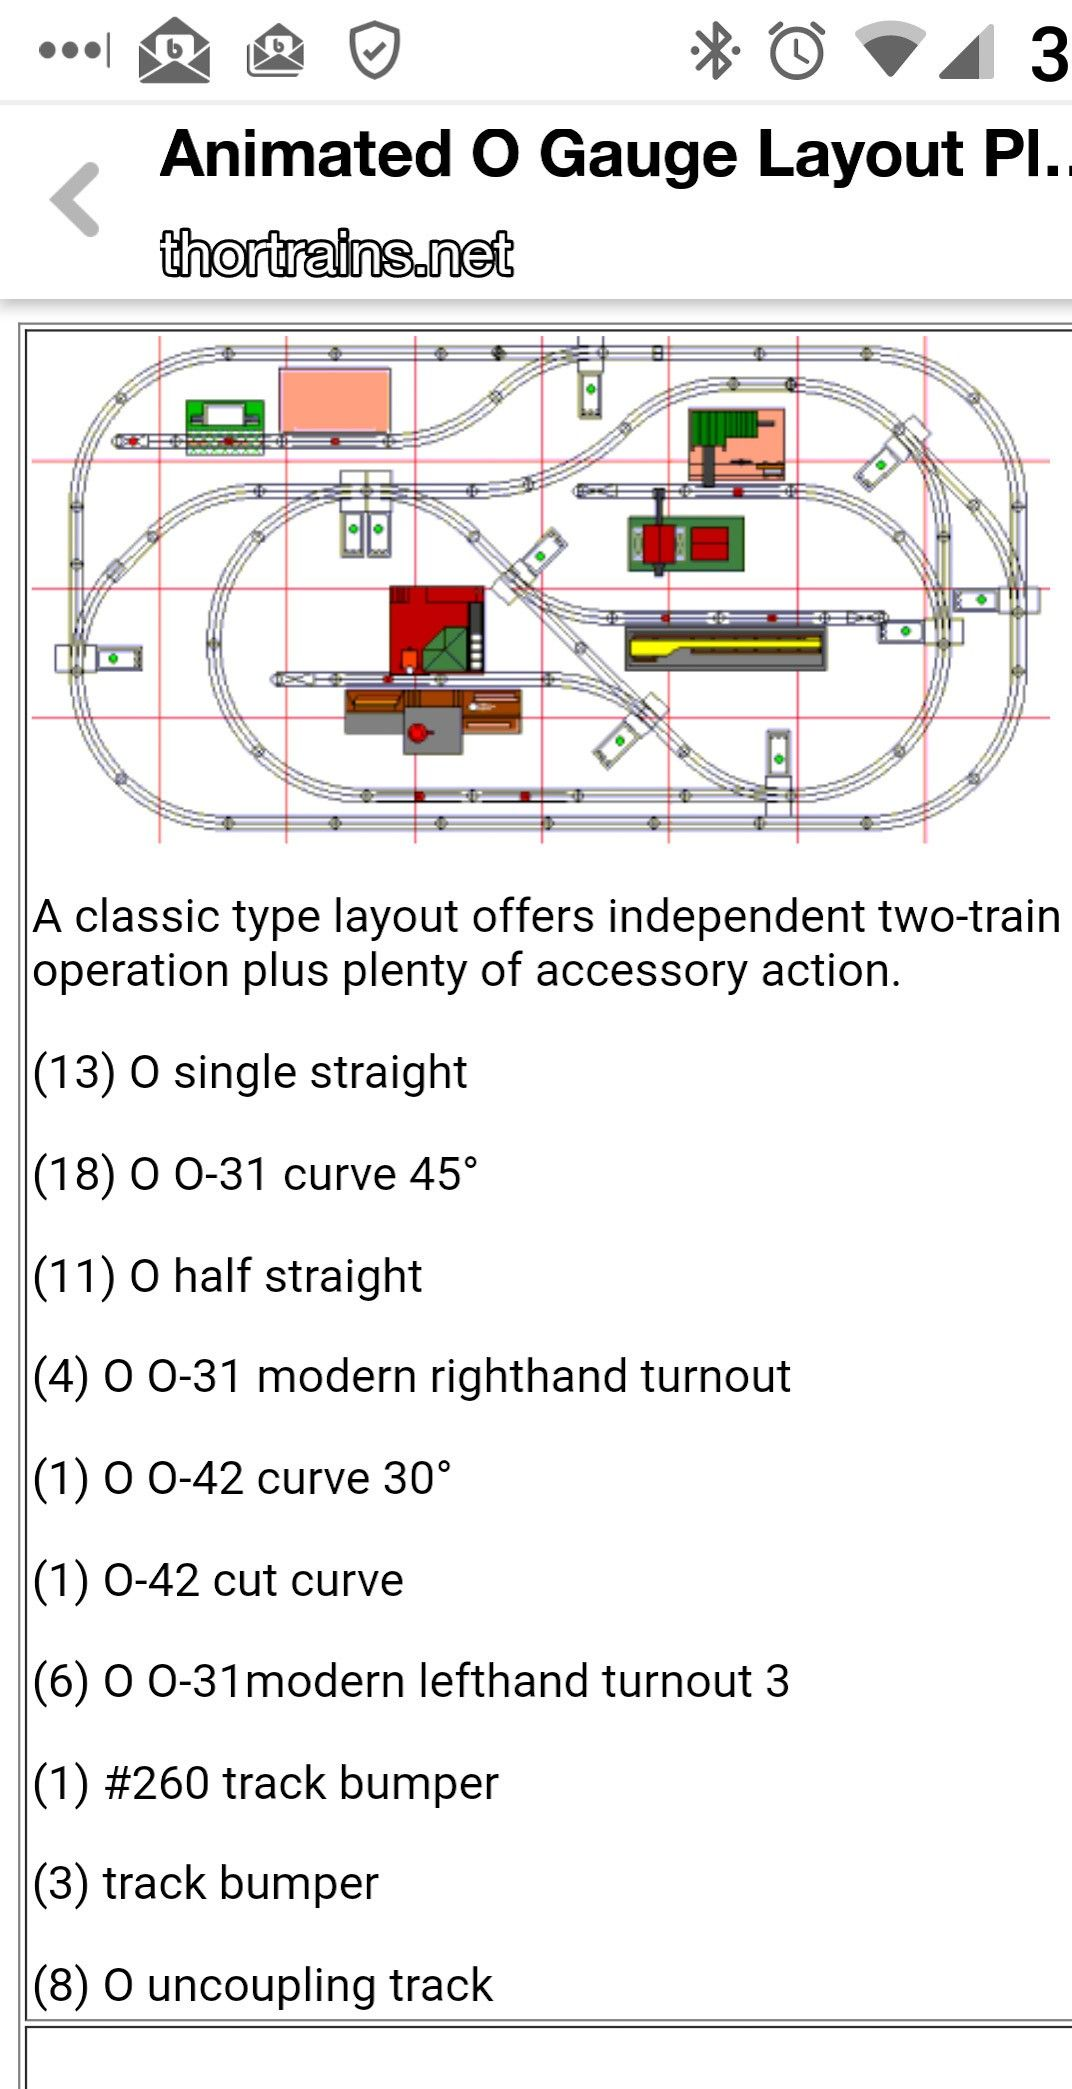 671 Lionel Train Wiring Diagram Detailed Diagrams Trains Schematics Pin By Michael Last Name On Model And Real Pinterest Industrial